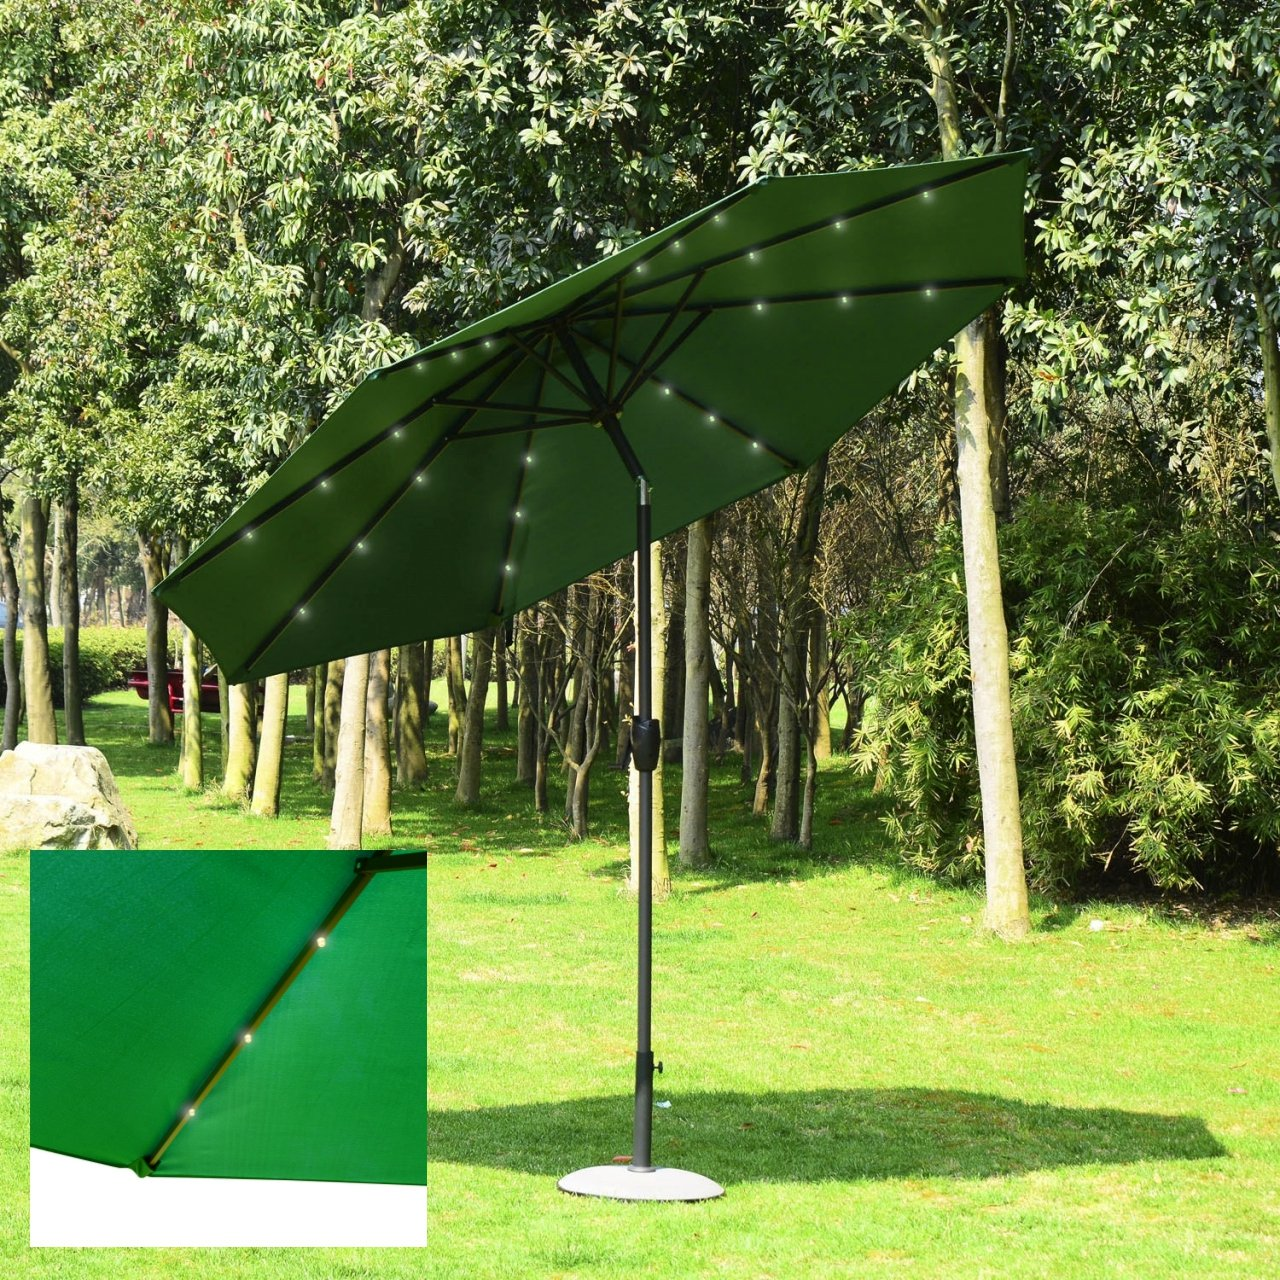 9' Patio Outdoor Solar Power LED 4-Color Light Sunshade Umbrella UV Blocking Tilt & Crank/ Green #958opt